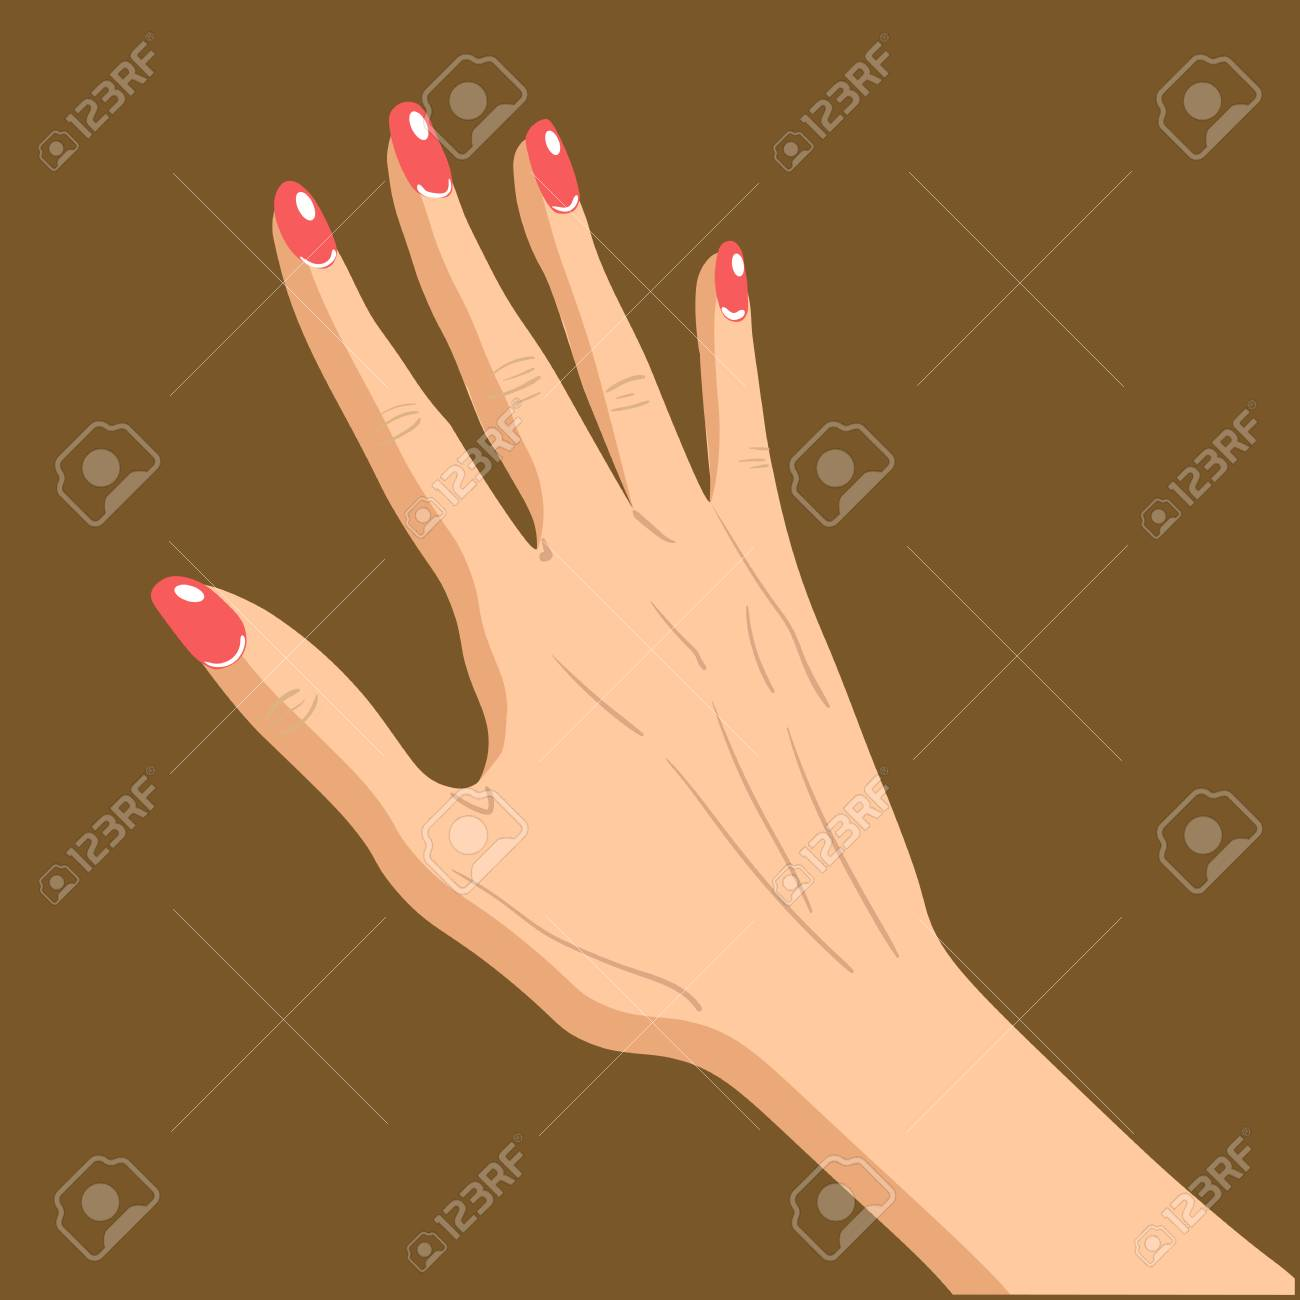 Beautiful female hand specifies by gesture isolated on brown background - 125654072